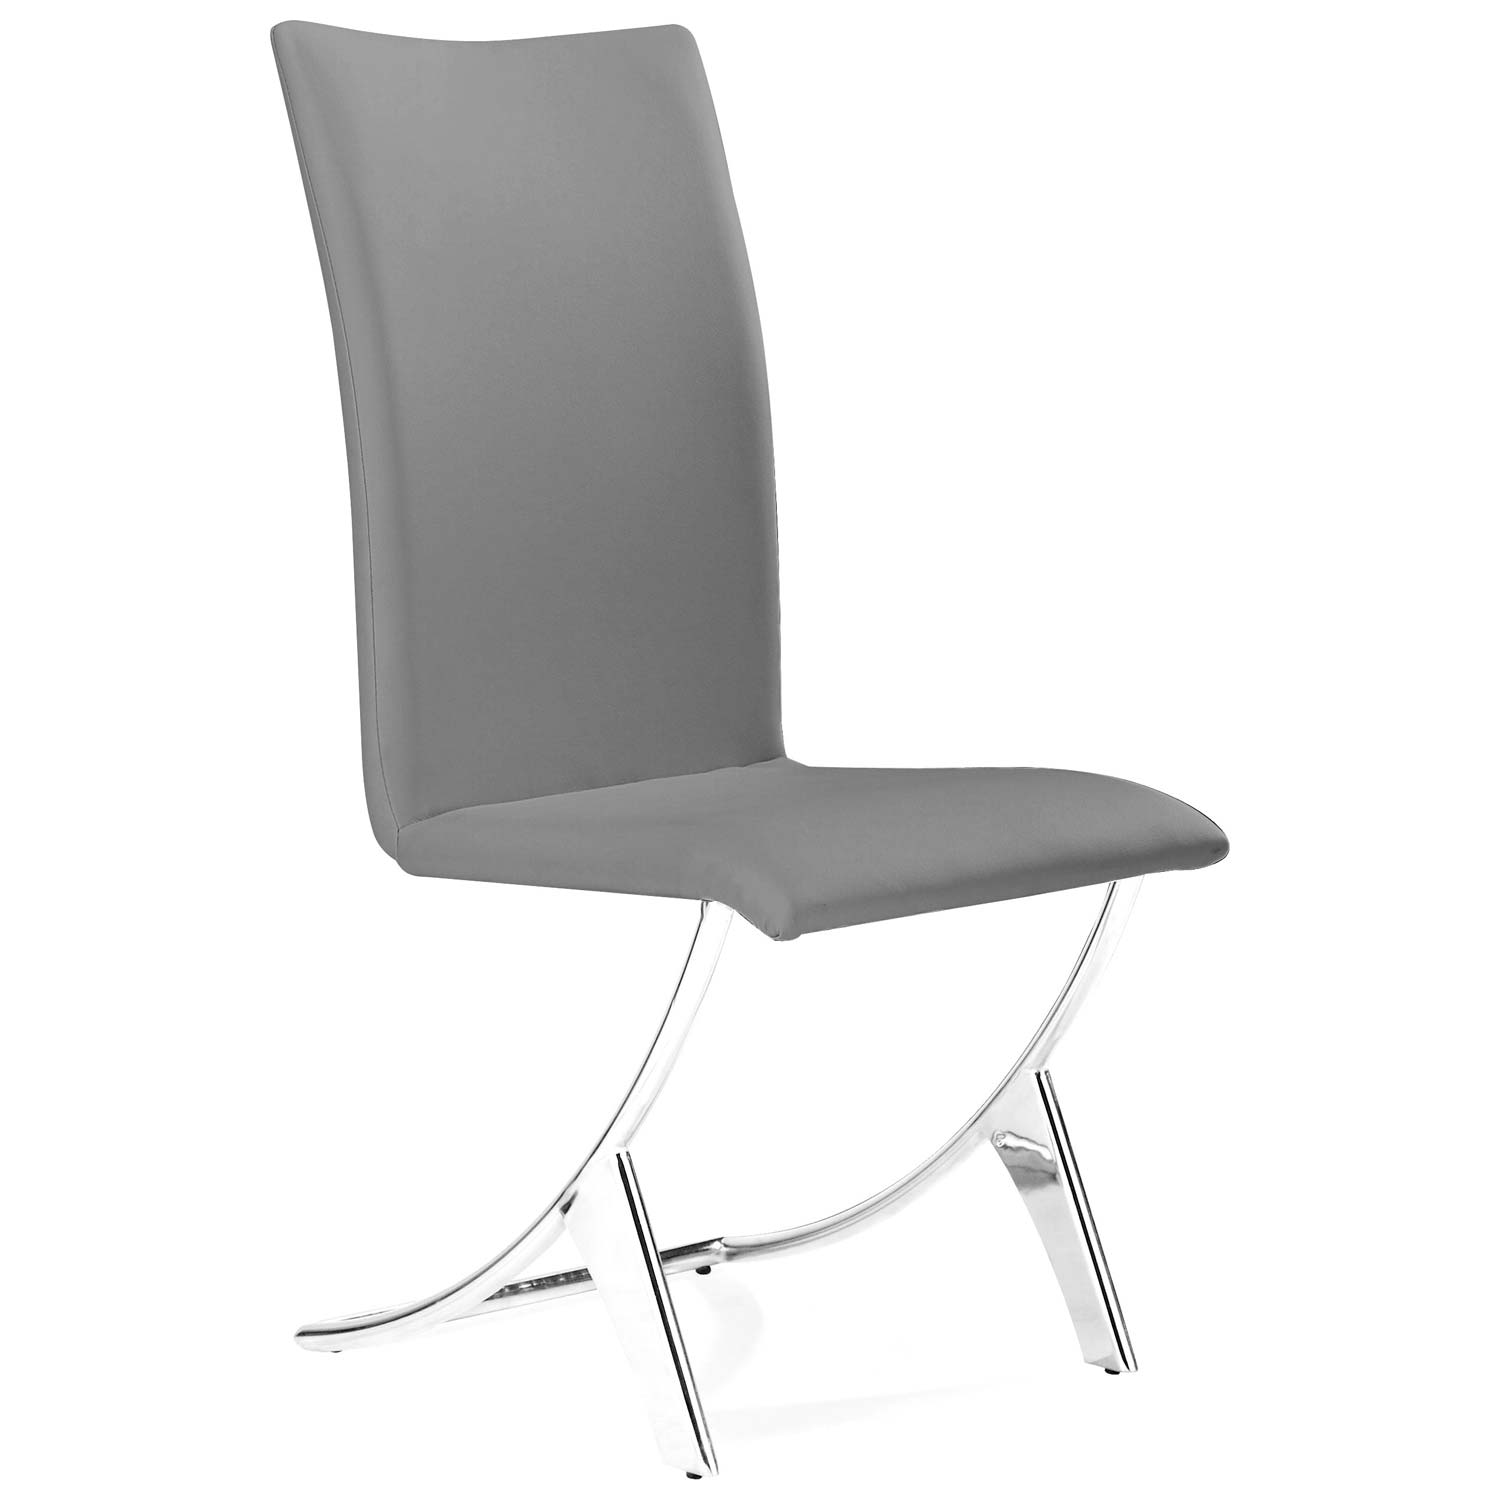 Delfin Dining Chair - Chrome Steel, Gray